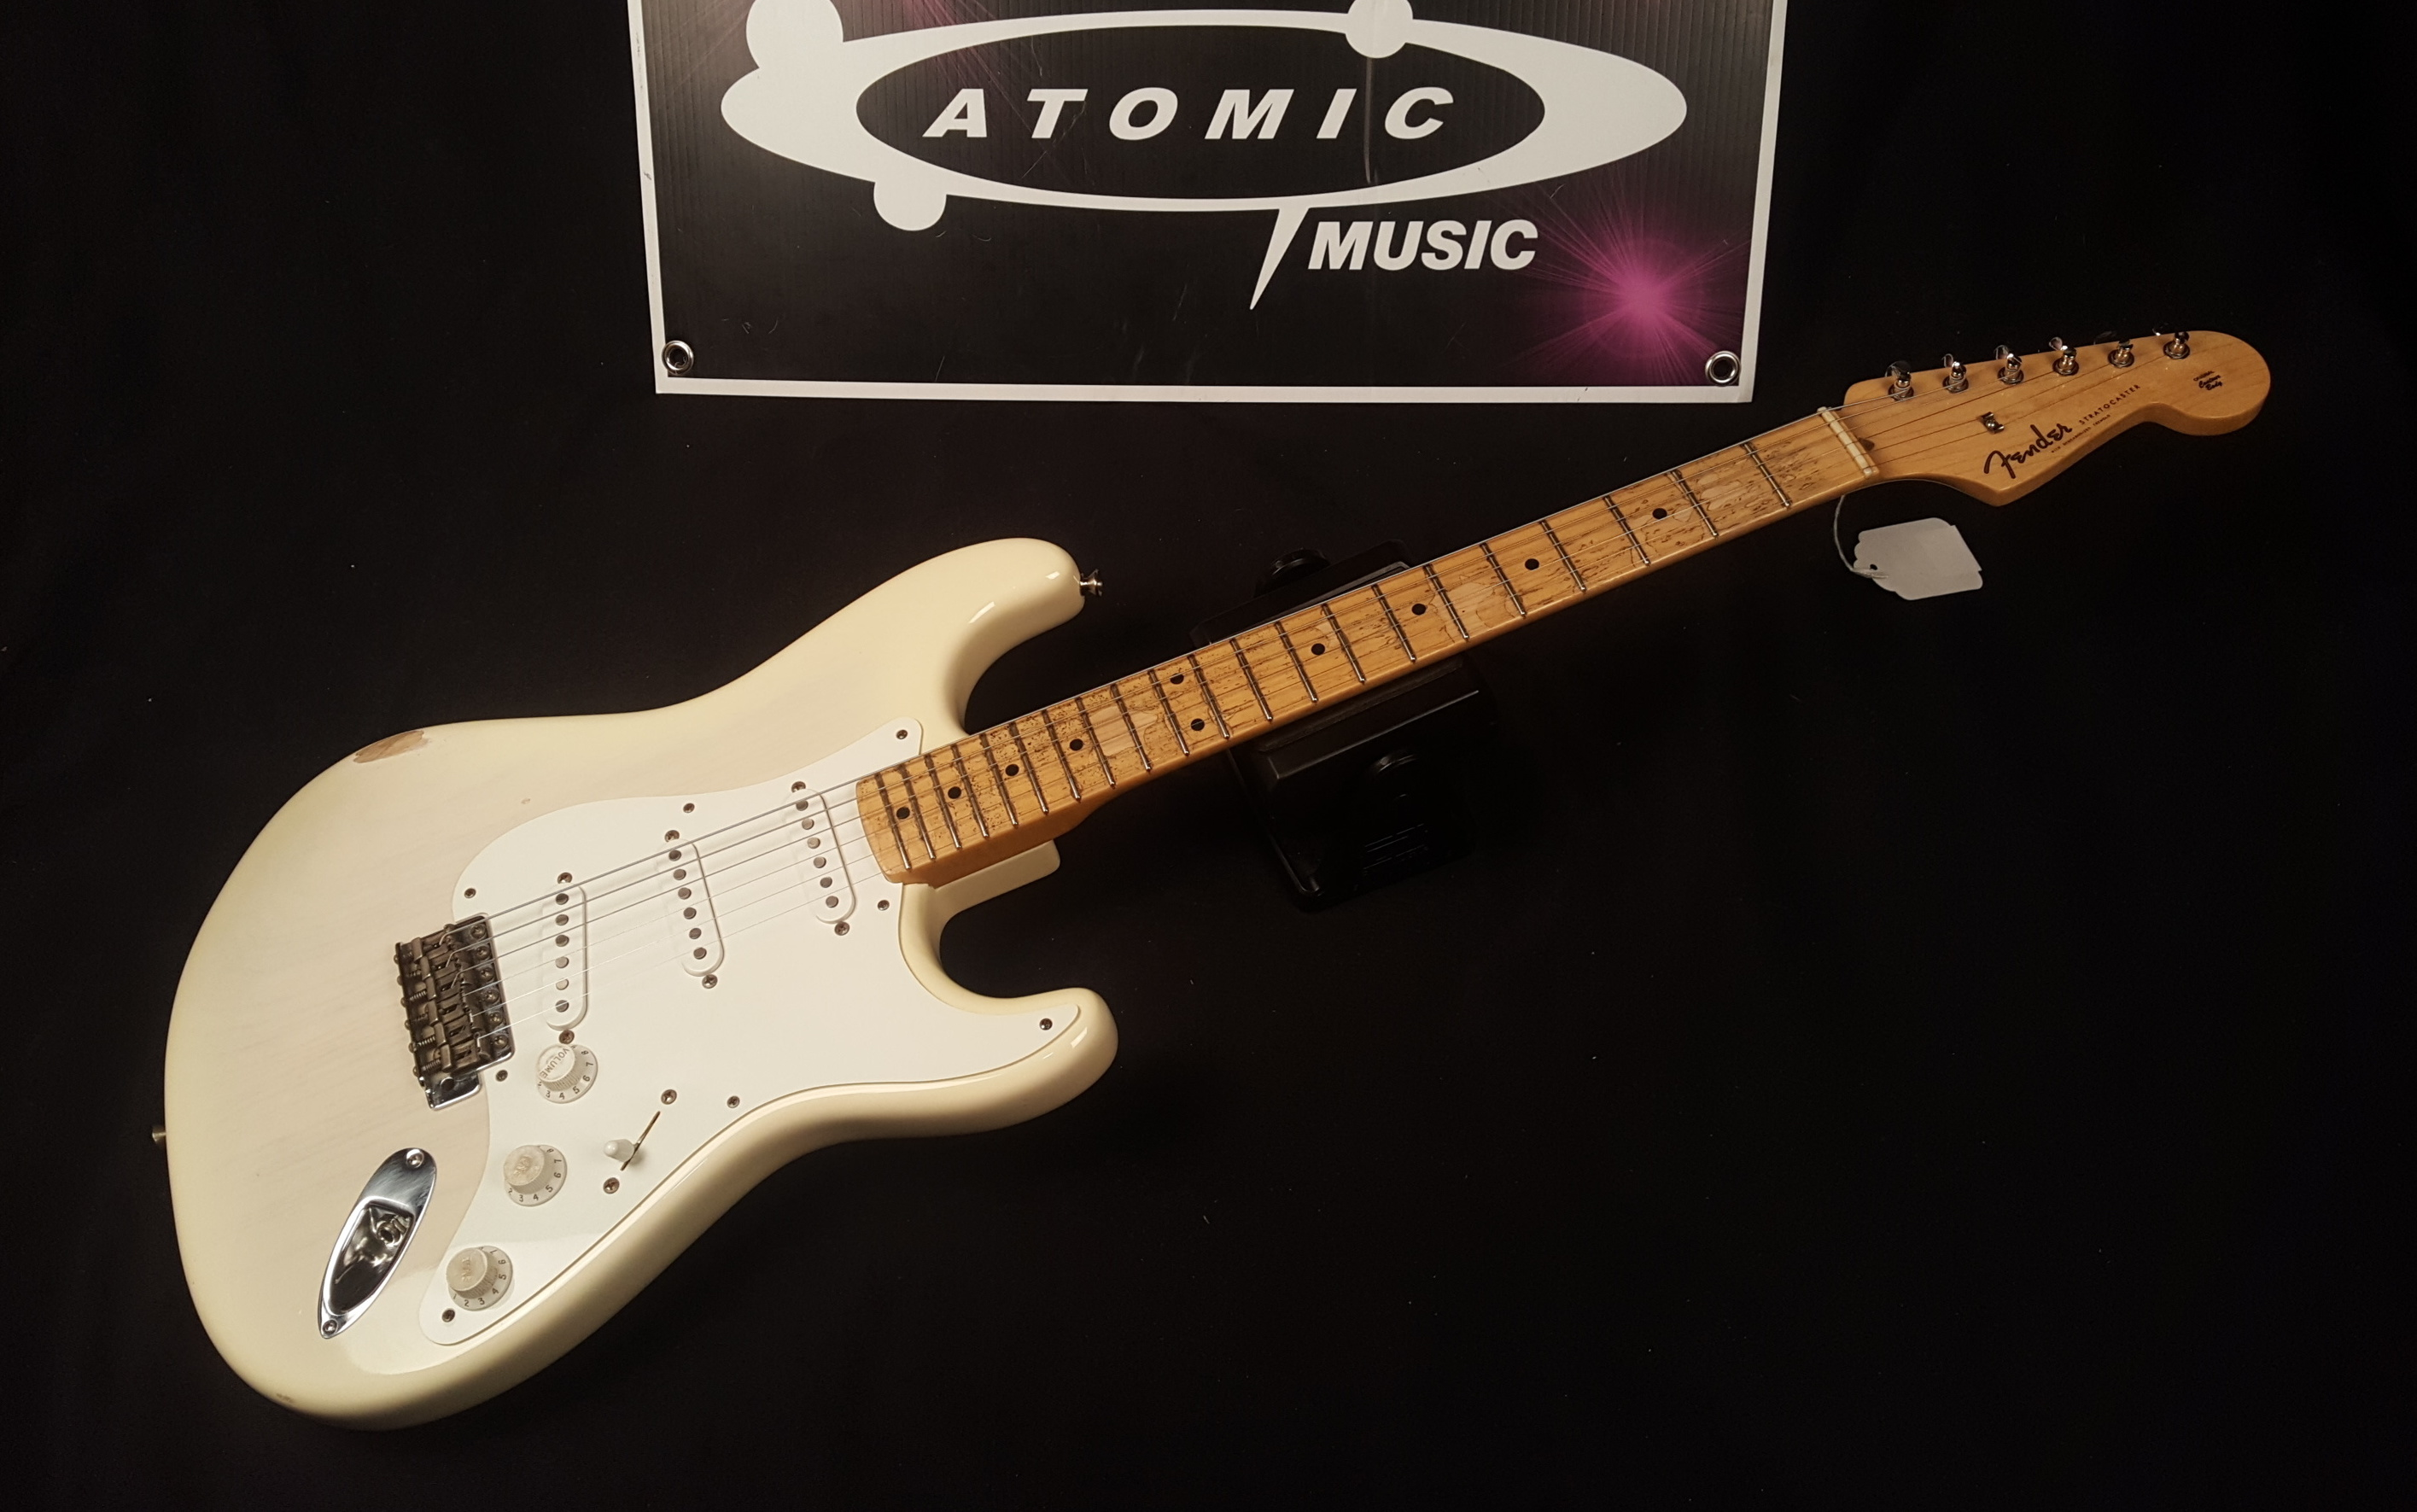 FENDER AMERICAN VINTAGE '56 Reissue STRATOCASTER Electric Guitar RELIC - WHITE!!